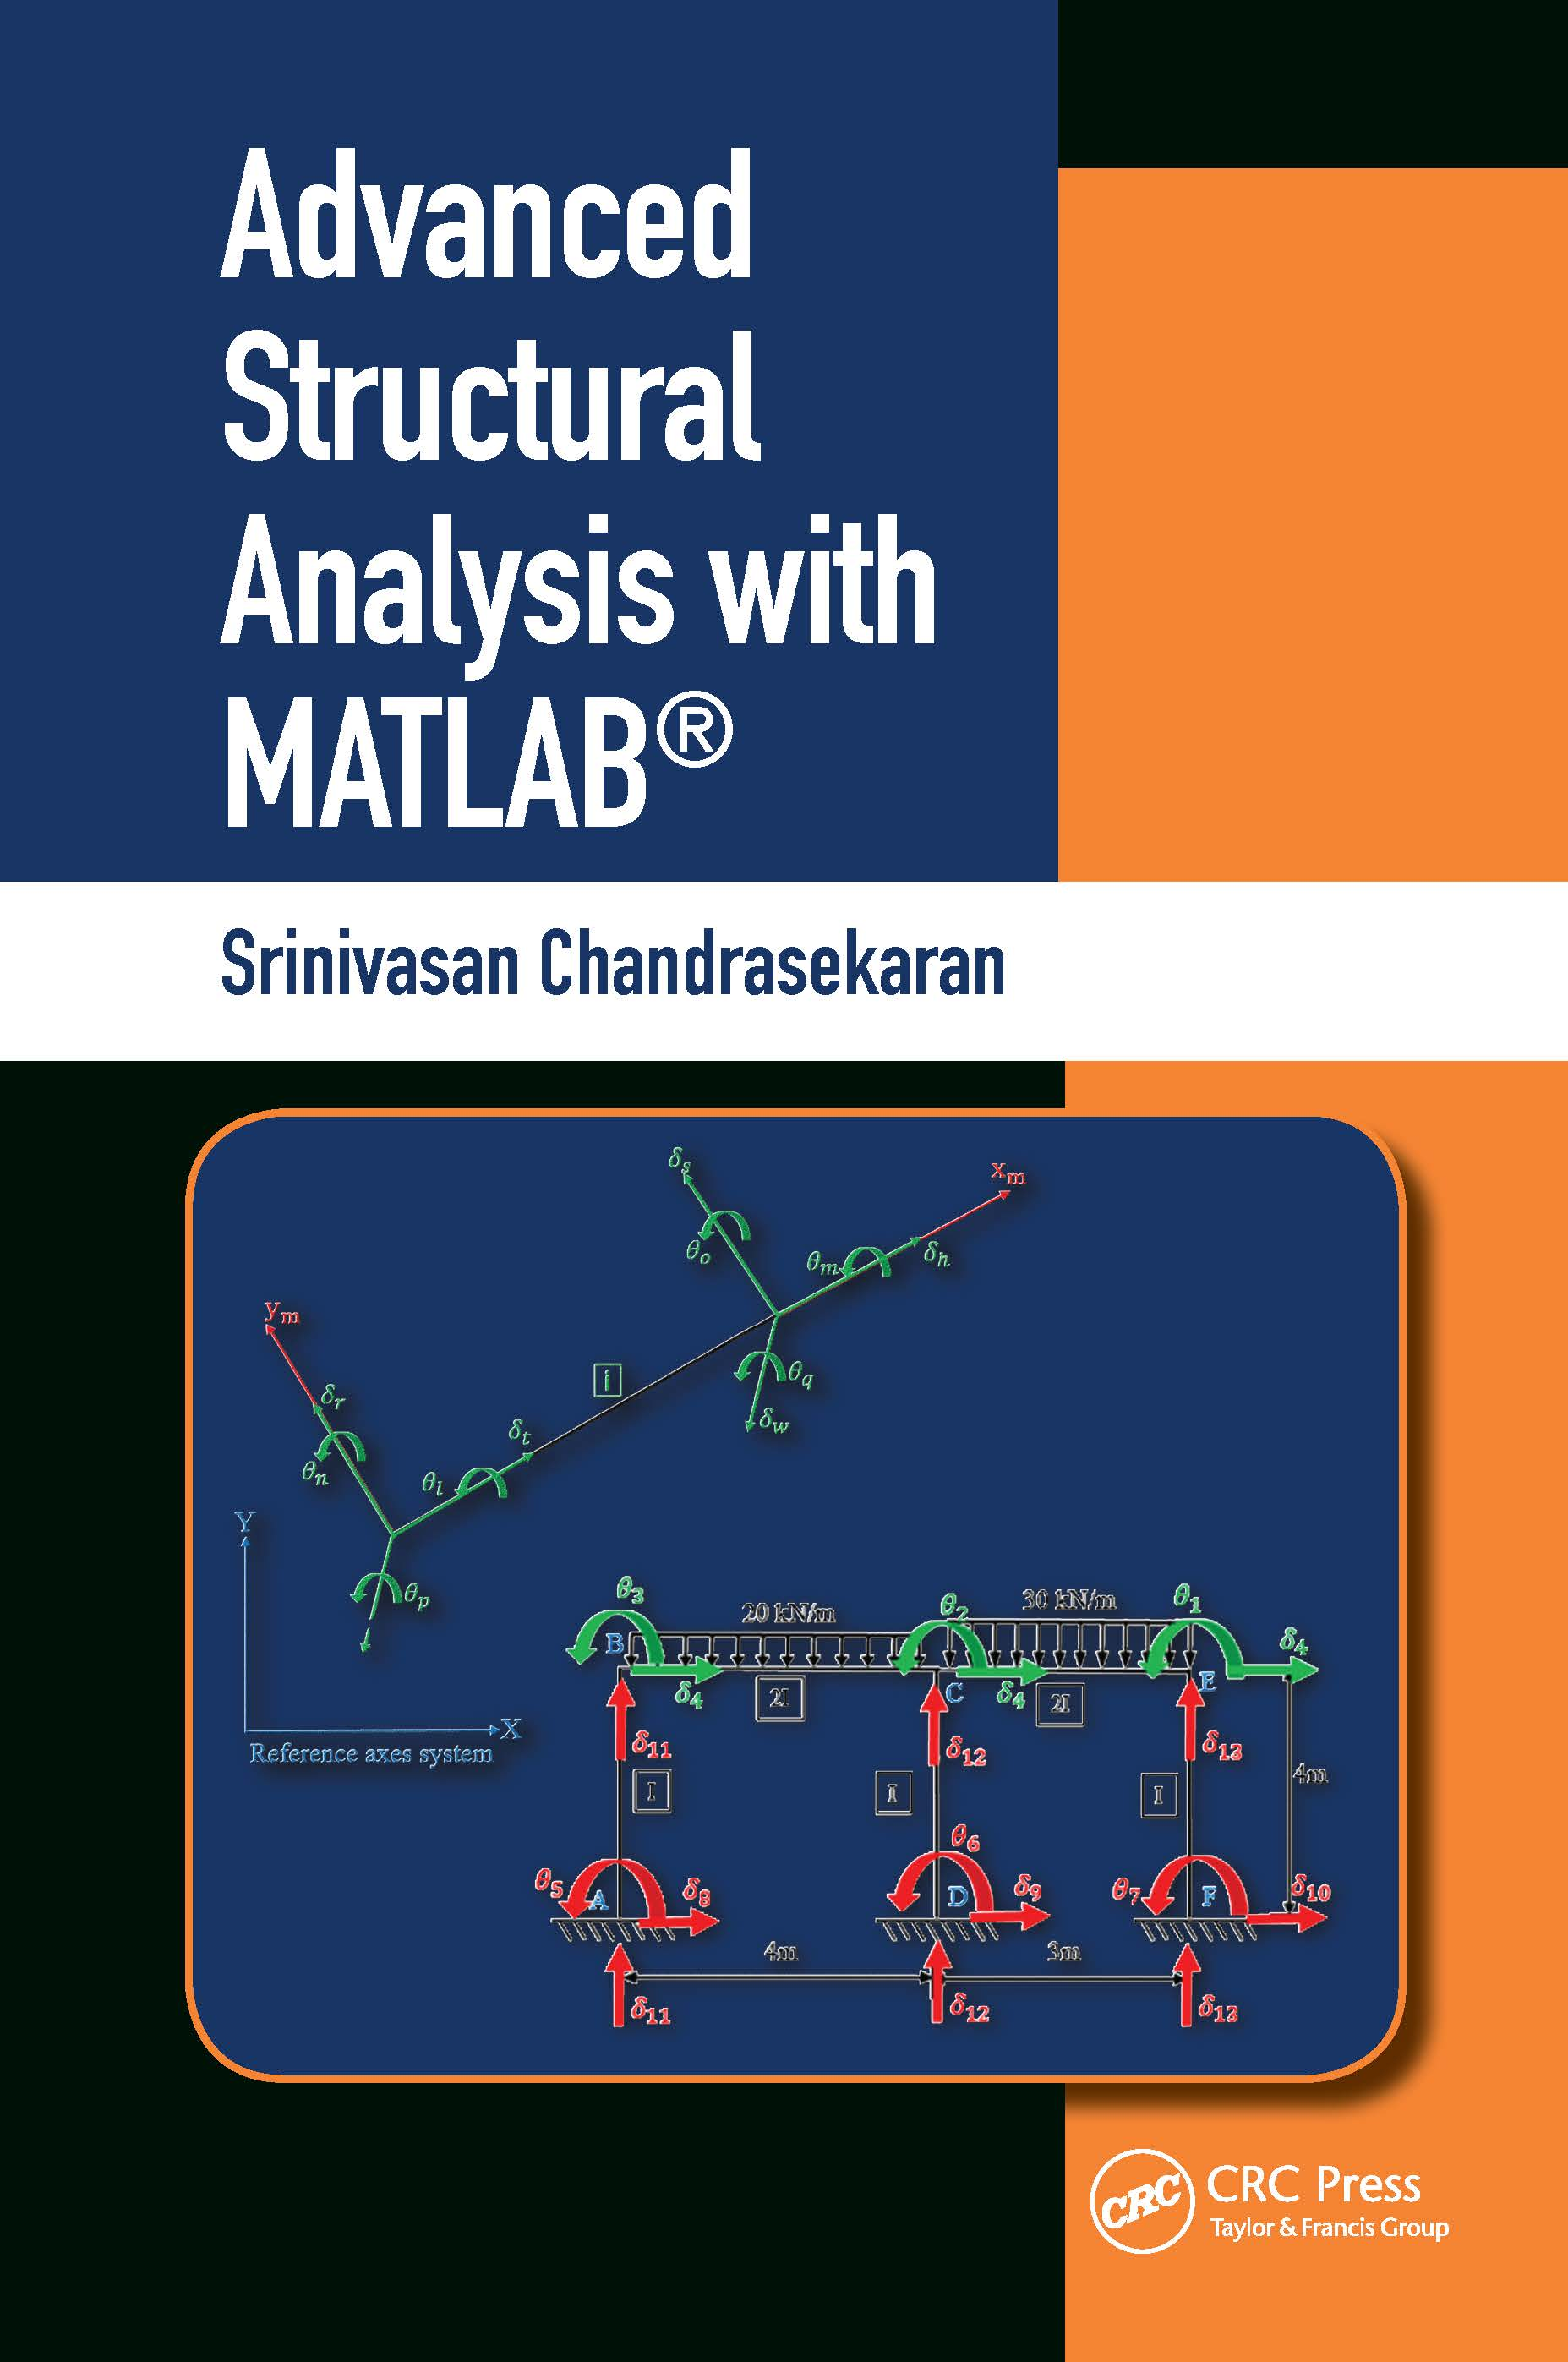 Advanced Structural Analysis with MATLAB® book cover